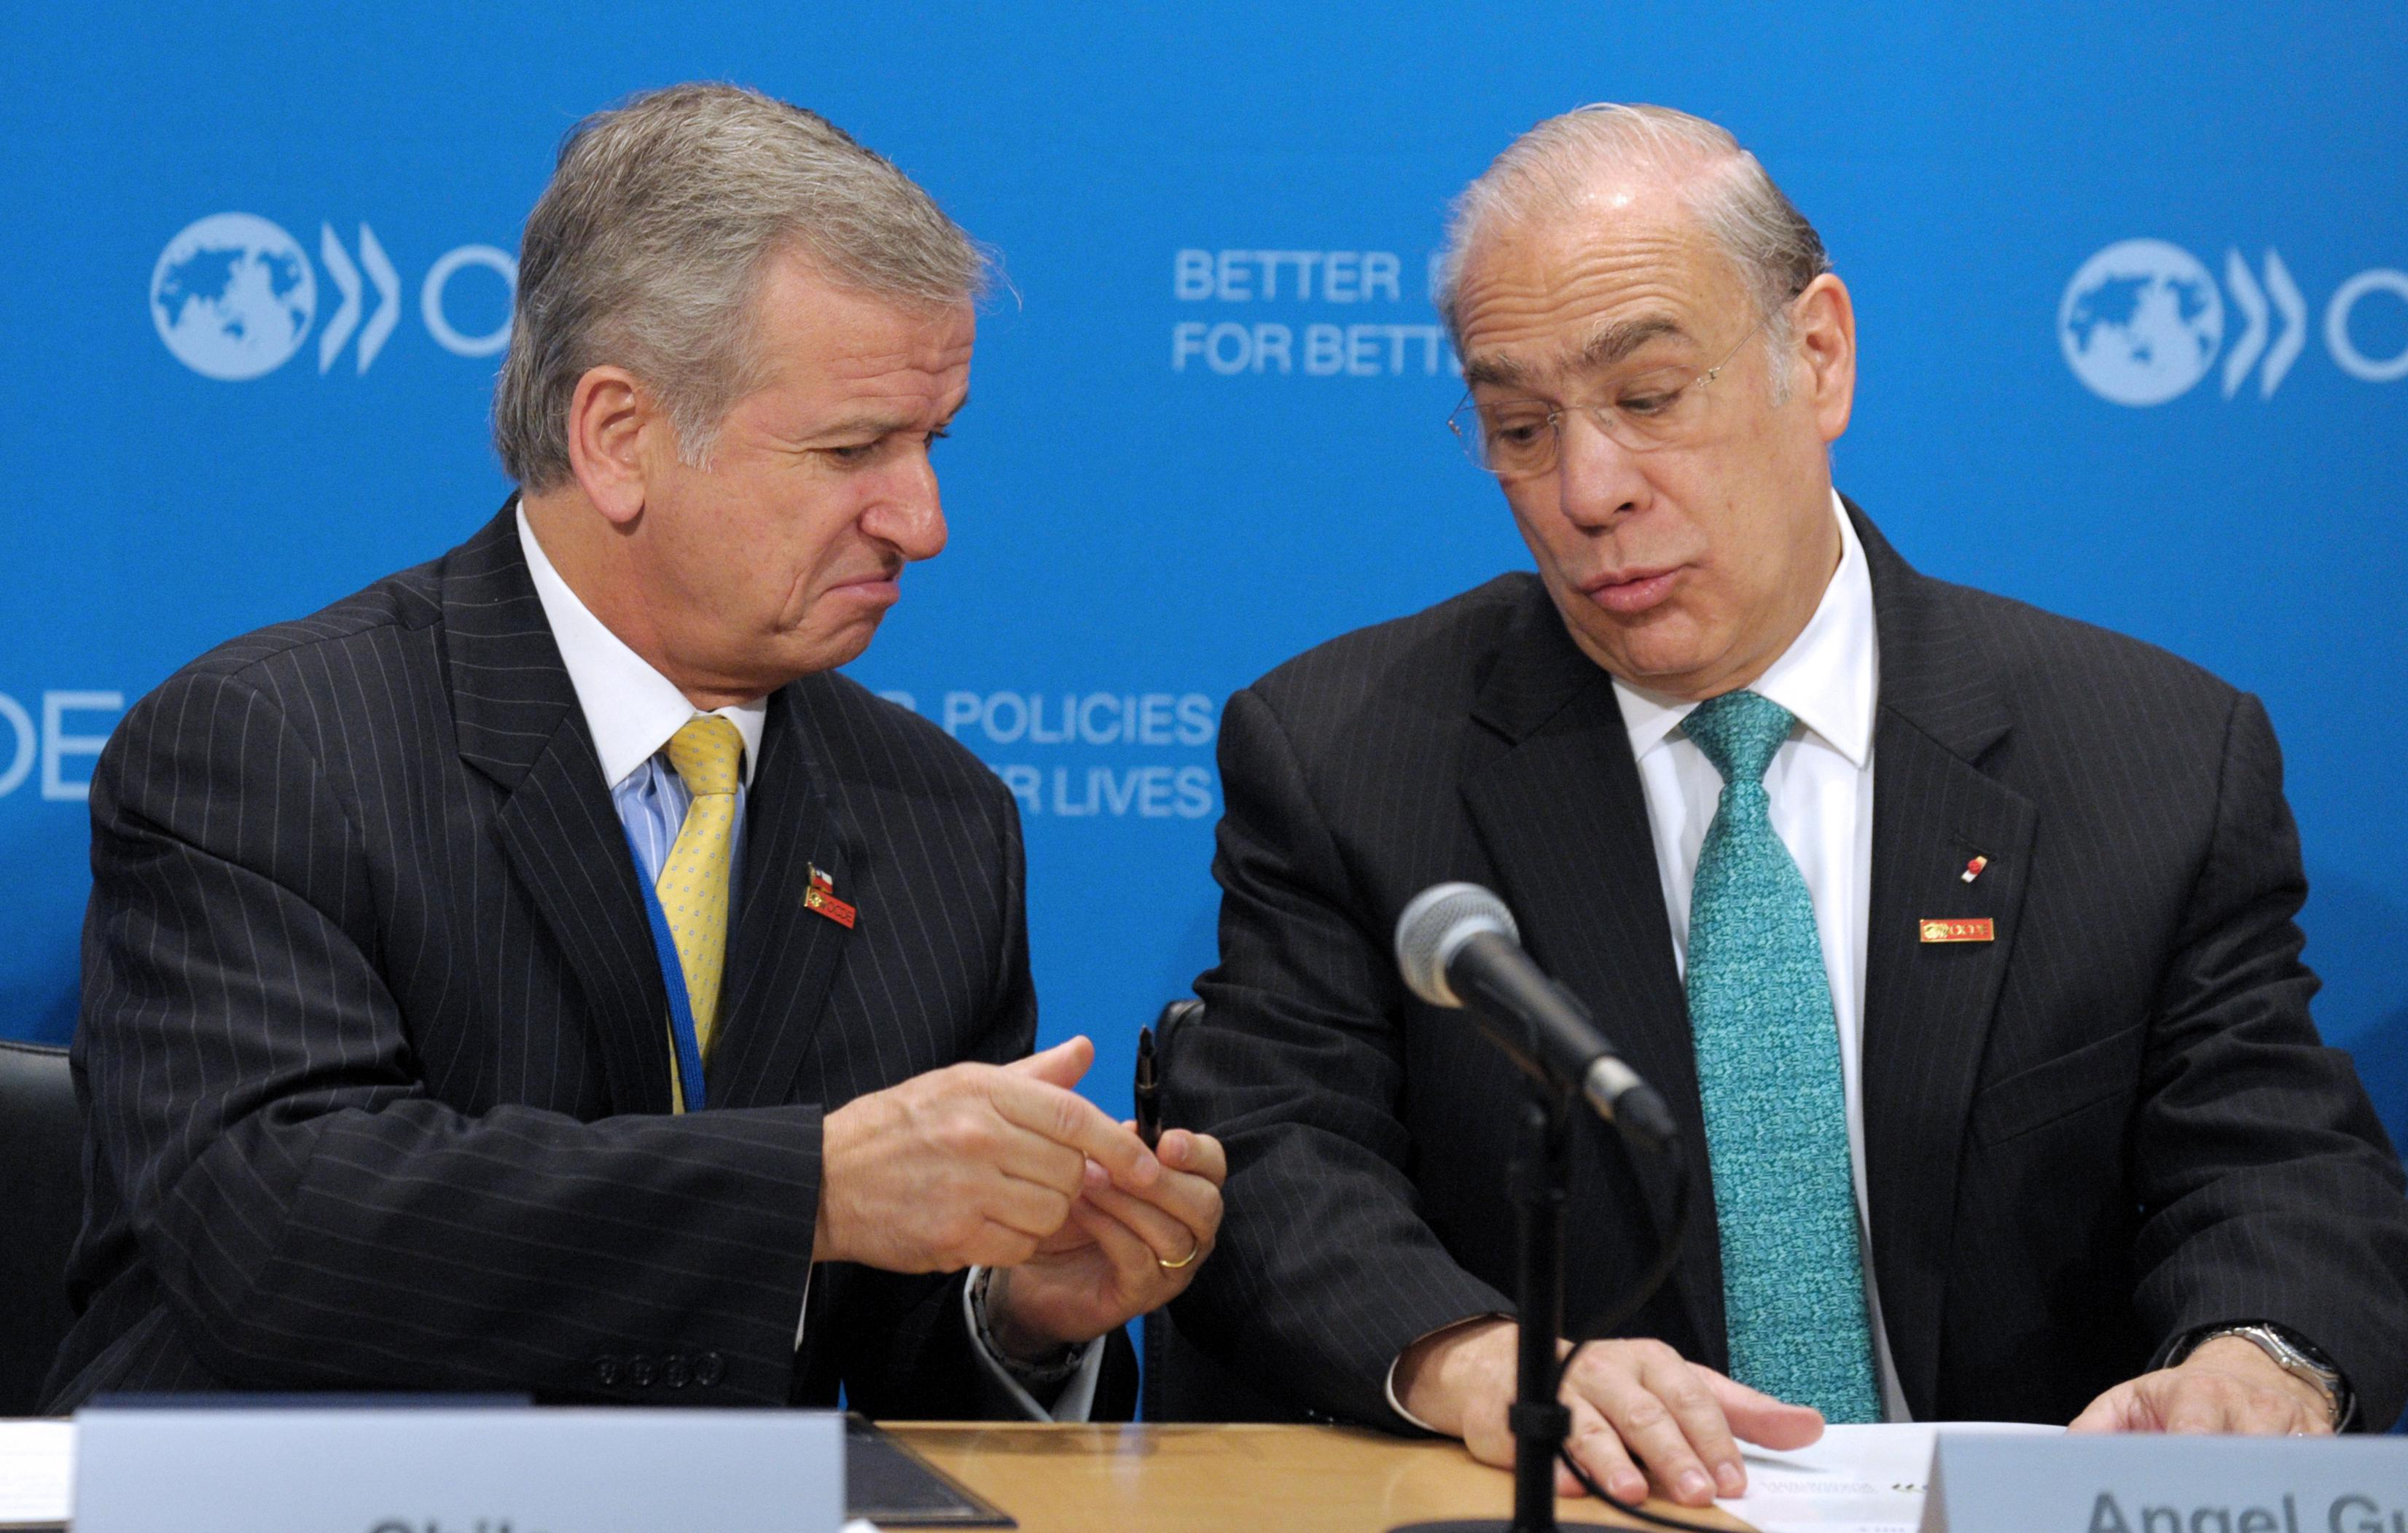 Chile Minister of Finance Felipe Larrain and OECD General Secretary Angel Gurria joke about the pen before the signing by Chile of a letter of intention to sign an OECD multilateral convention on mutual administrative assistance in tax matters during a signing ceremony at the OECD headquarters in Paris on May 29, 2013.